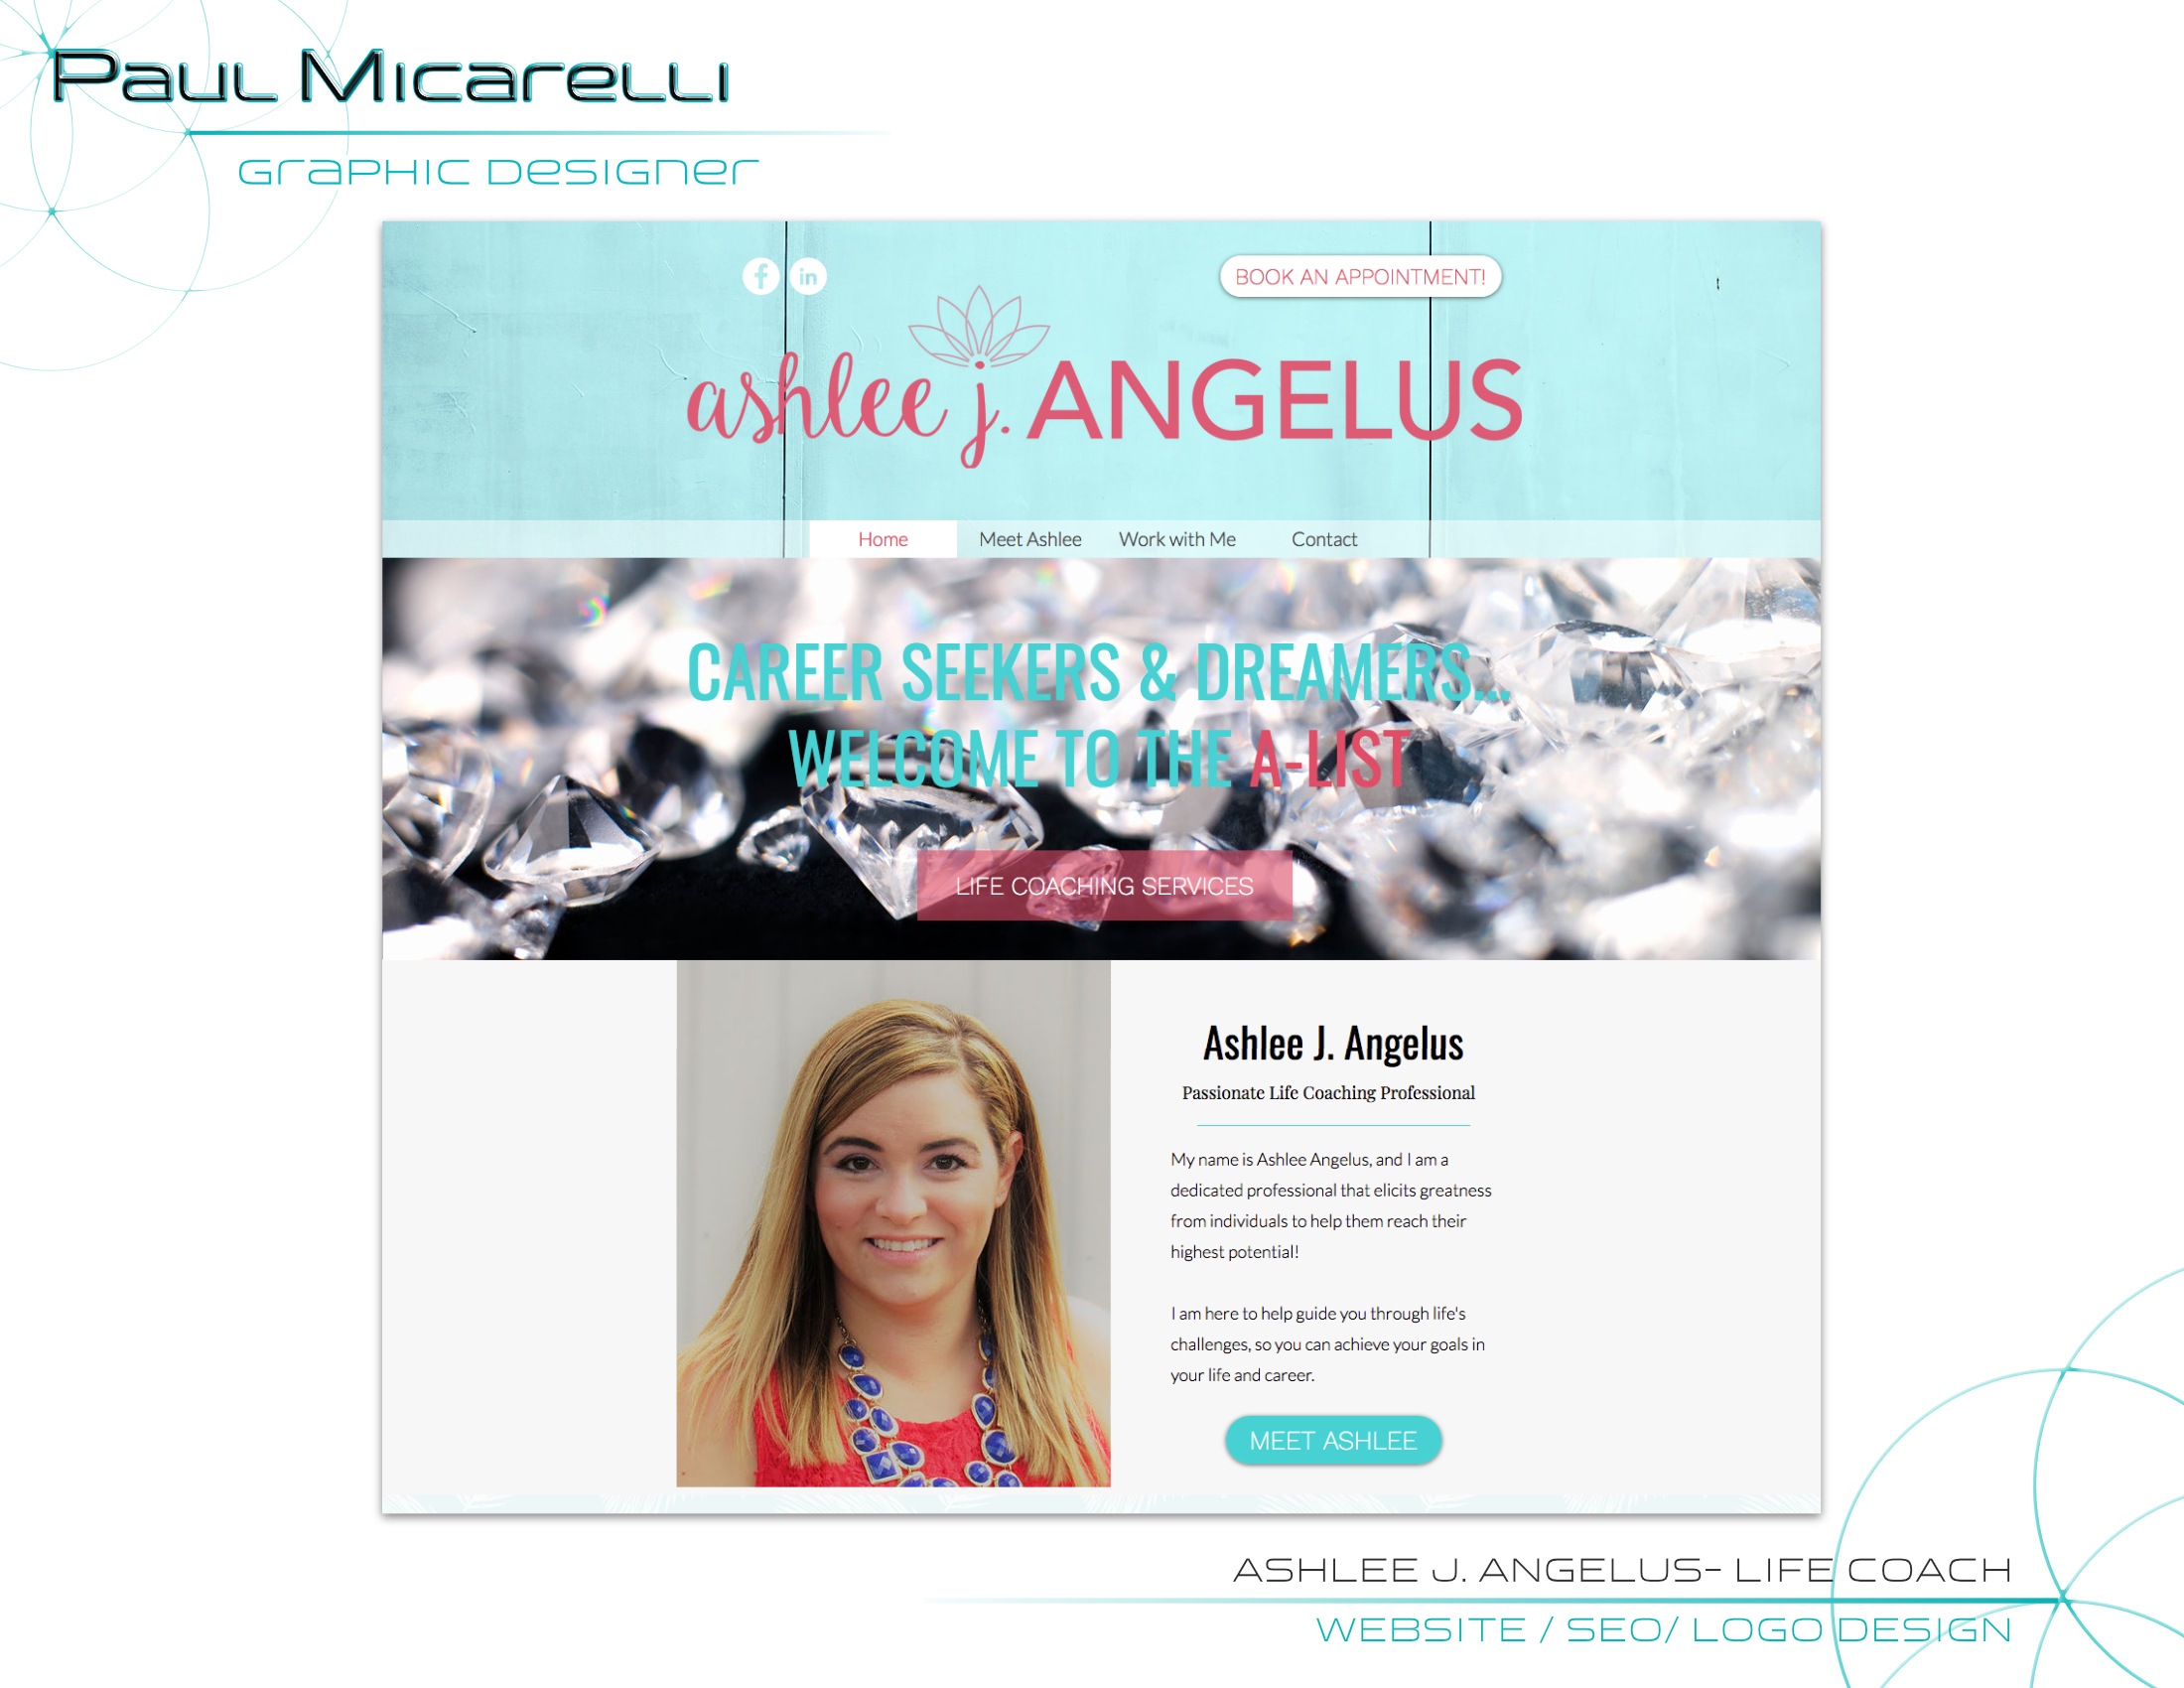 Paul-Micarelli-Ashlee J Angelus Website.